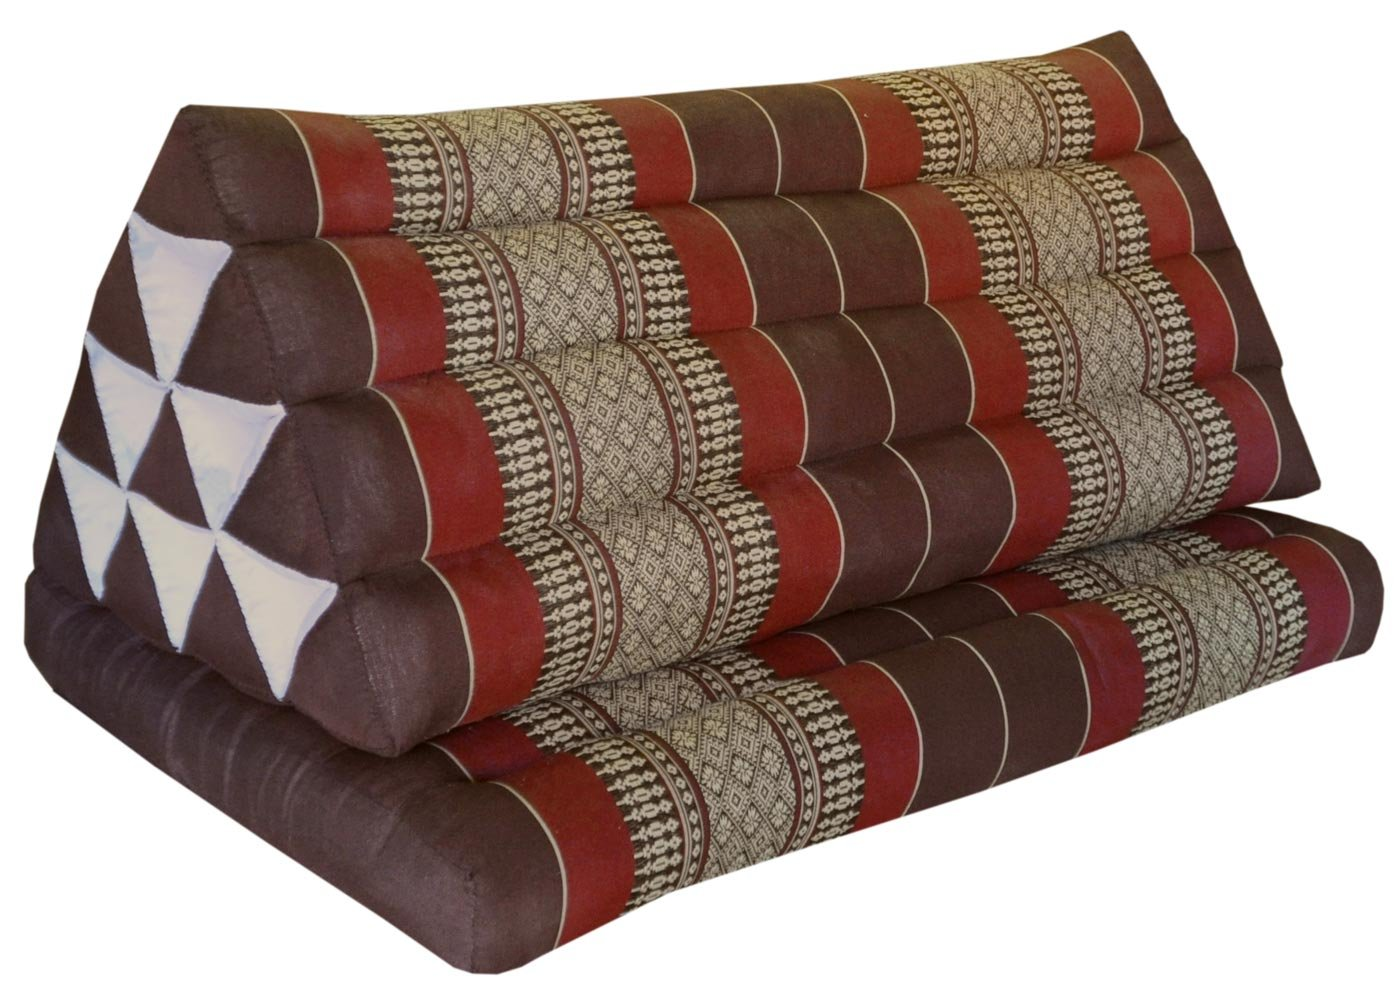 Thai triangle cushion XXL, with 1 folding seat, brown/burgundy, sofa, relaxation, beach, pool, meditation, yoga, made in Thailand. (82516) by Wilai GmbH